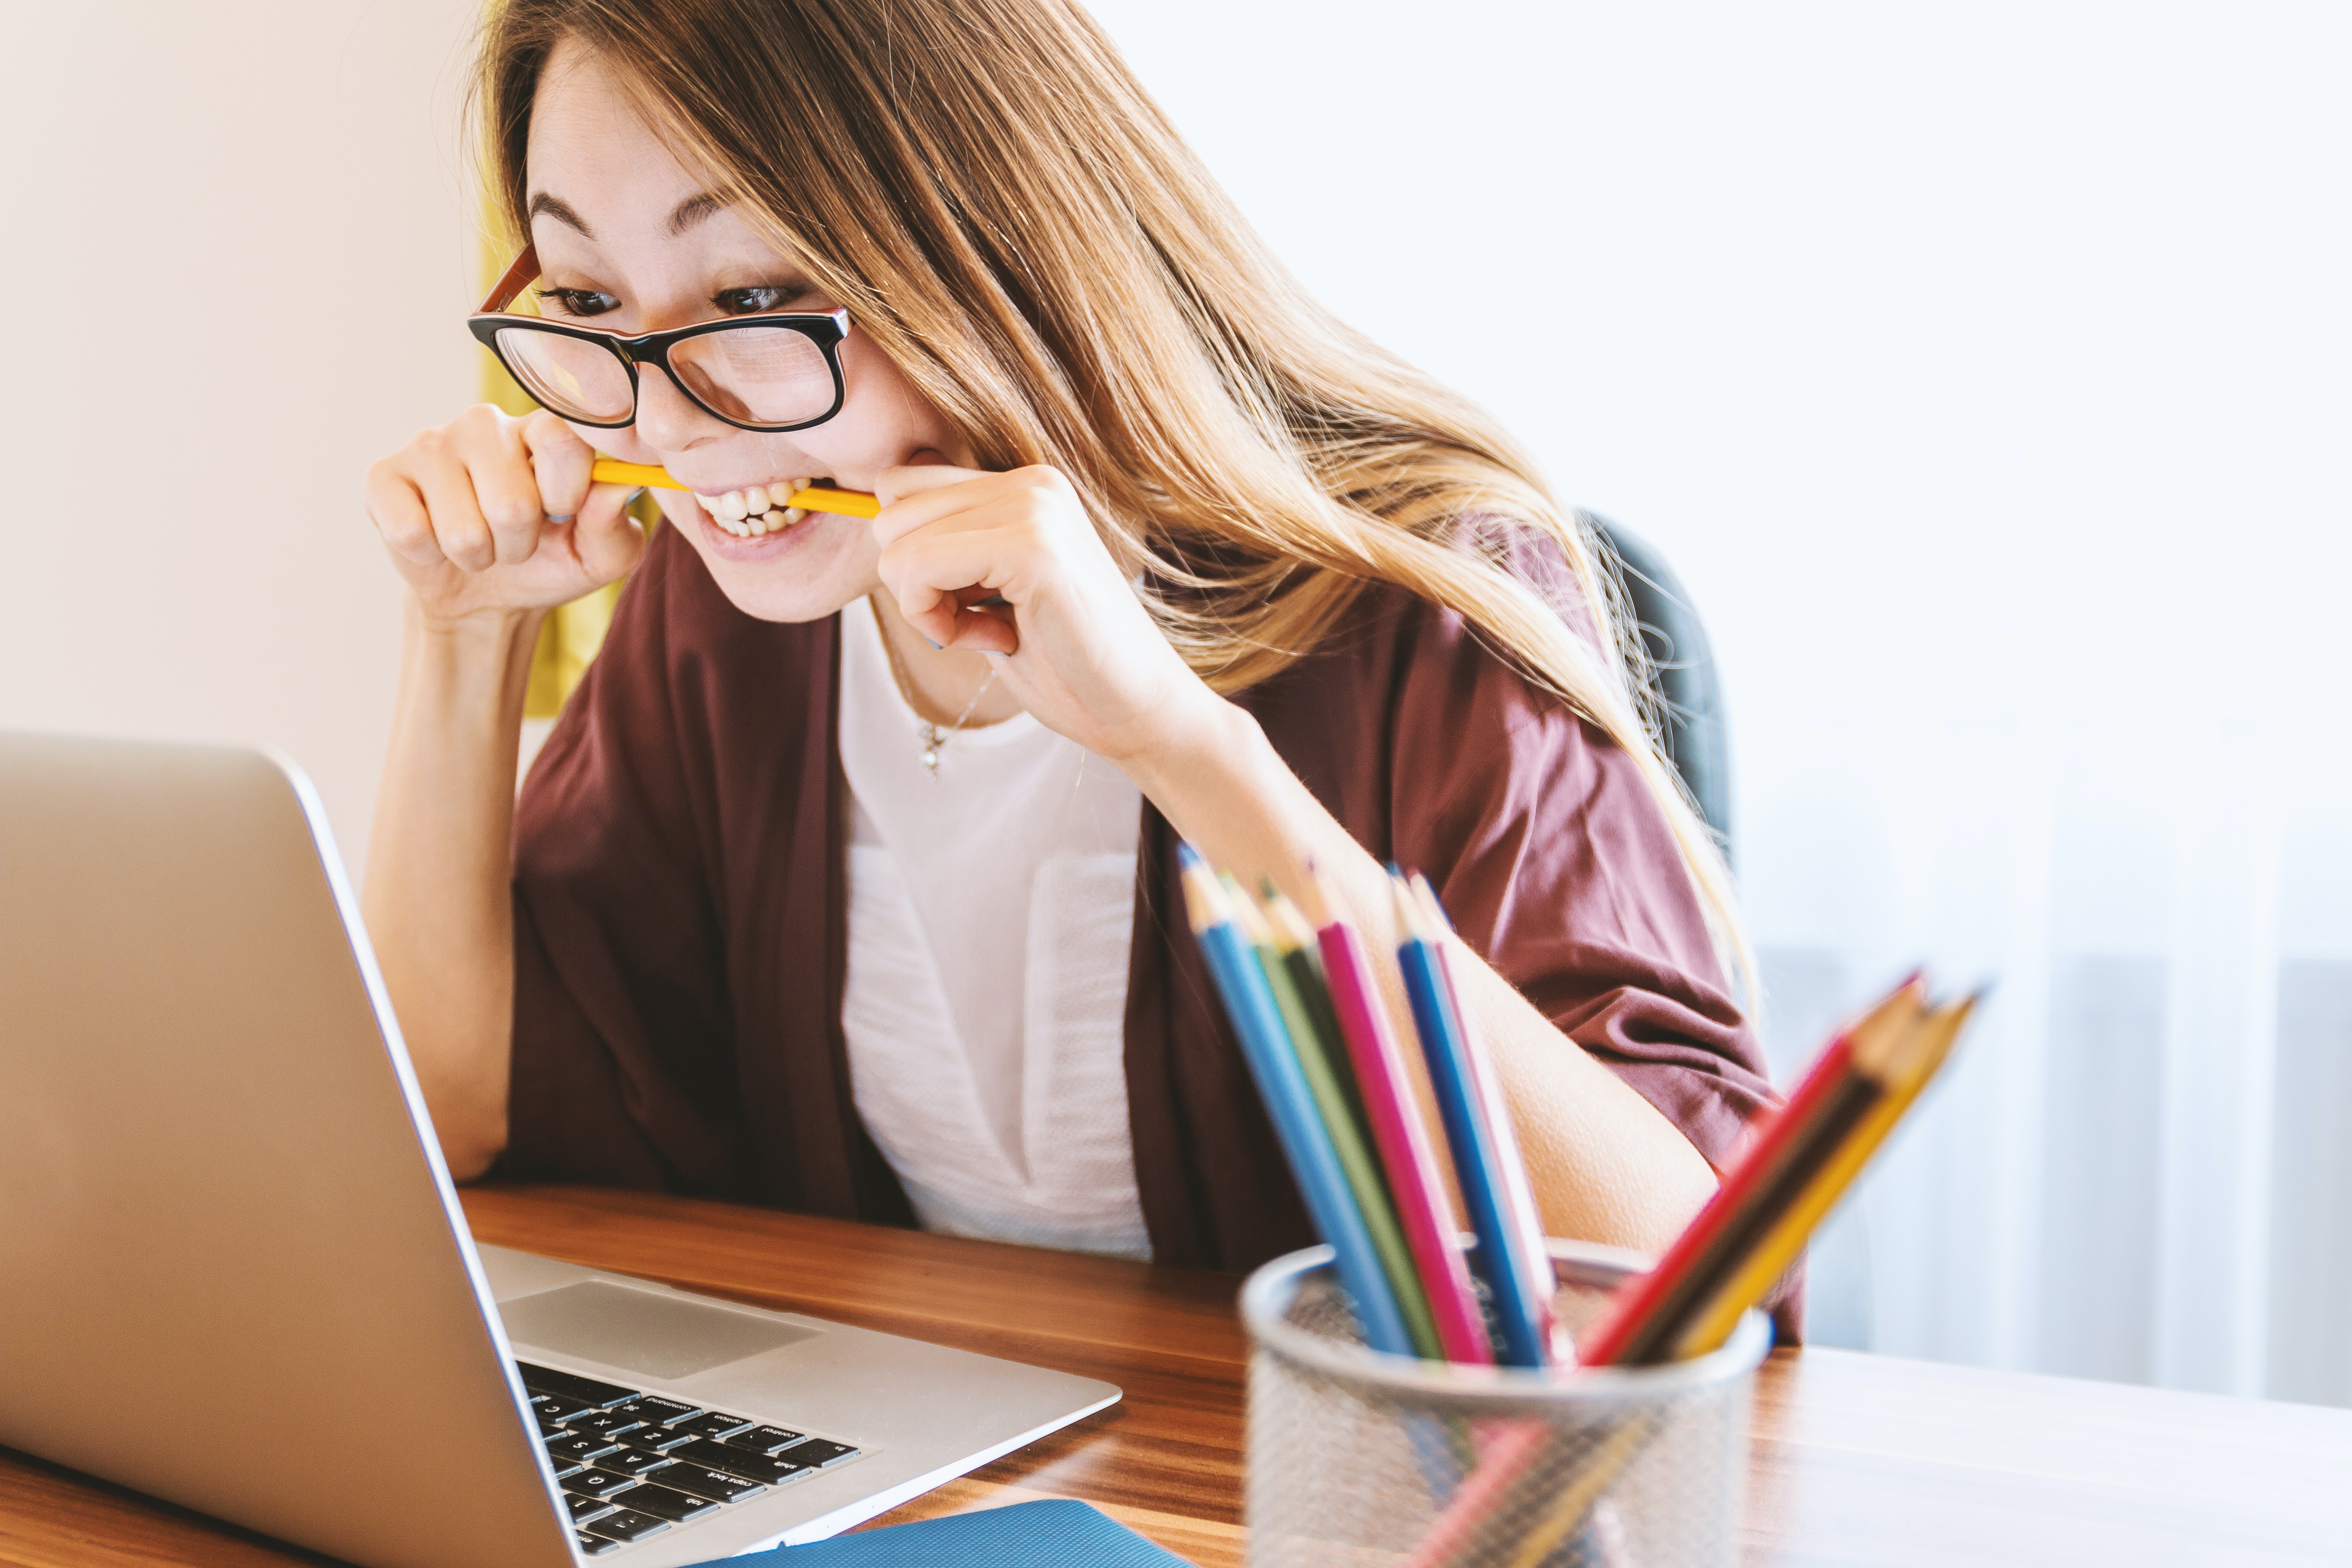 woman stressed looking at computer